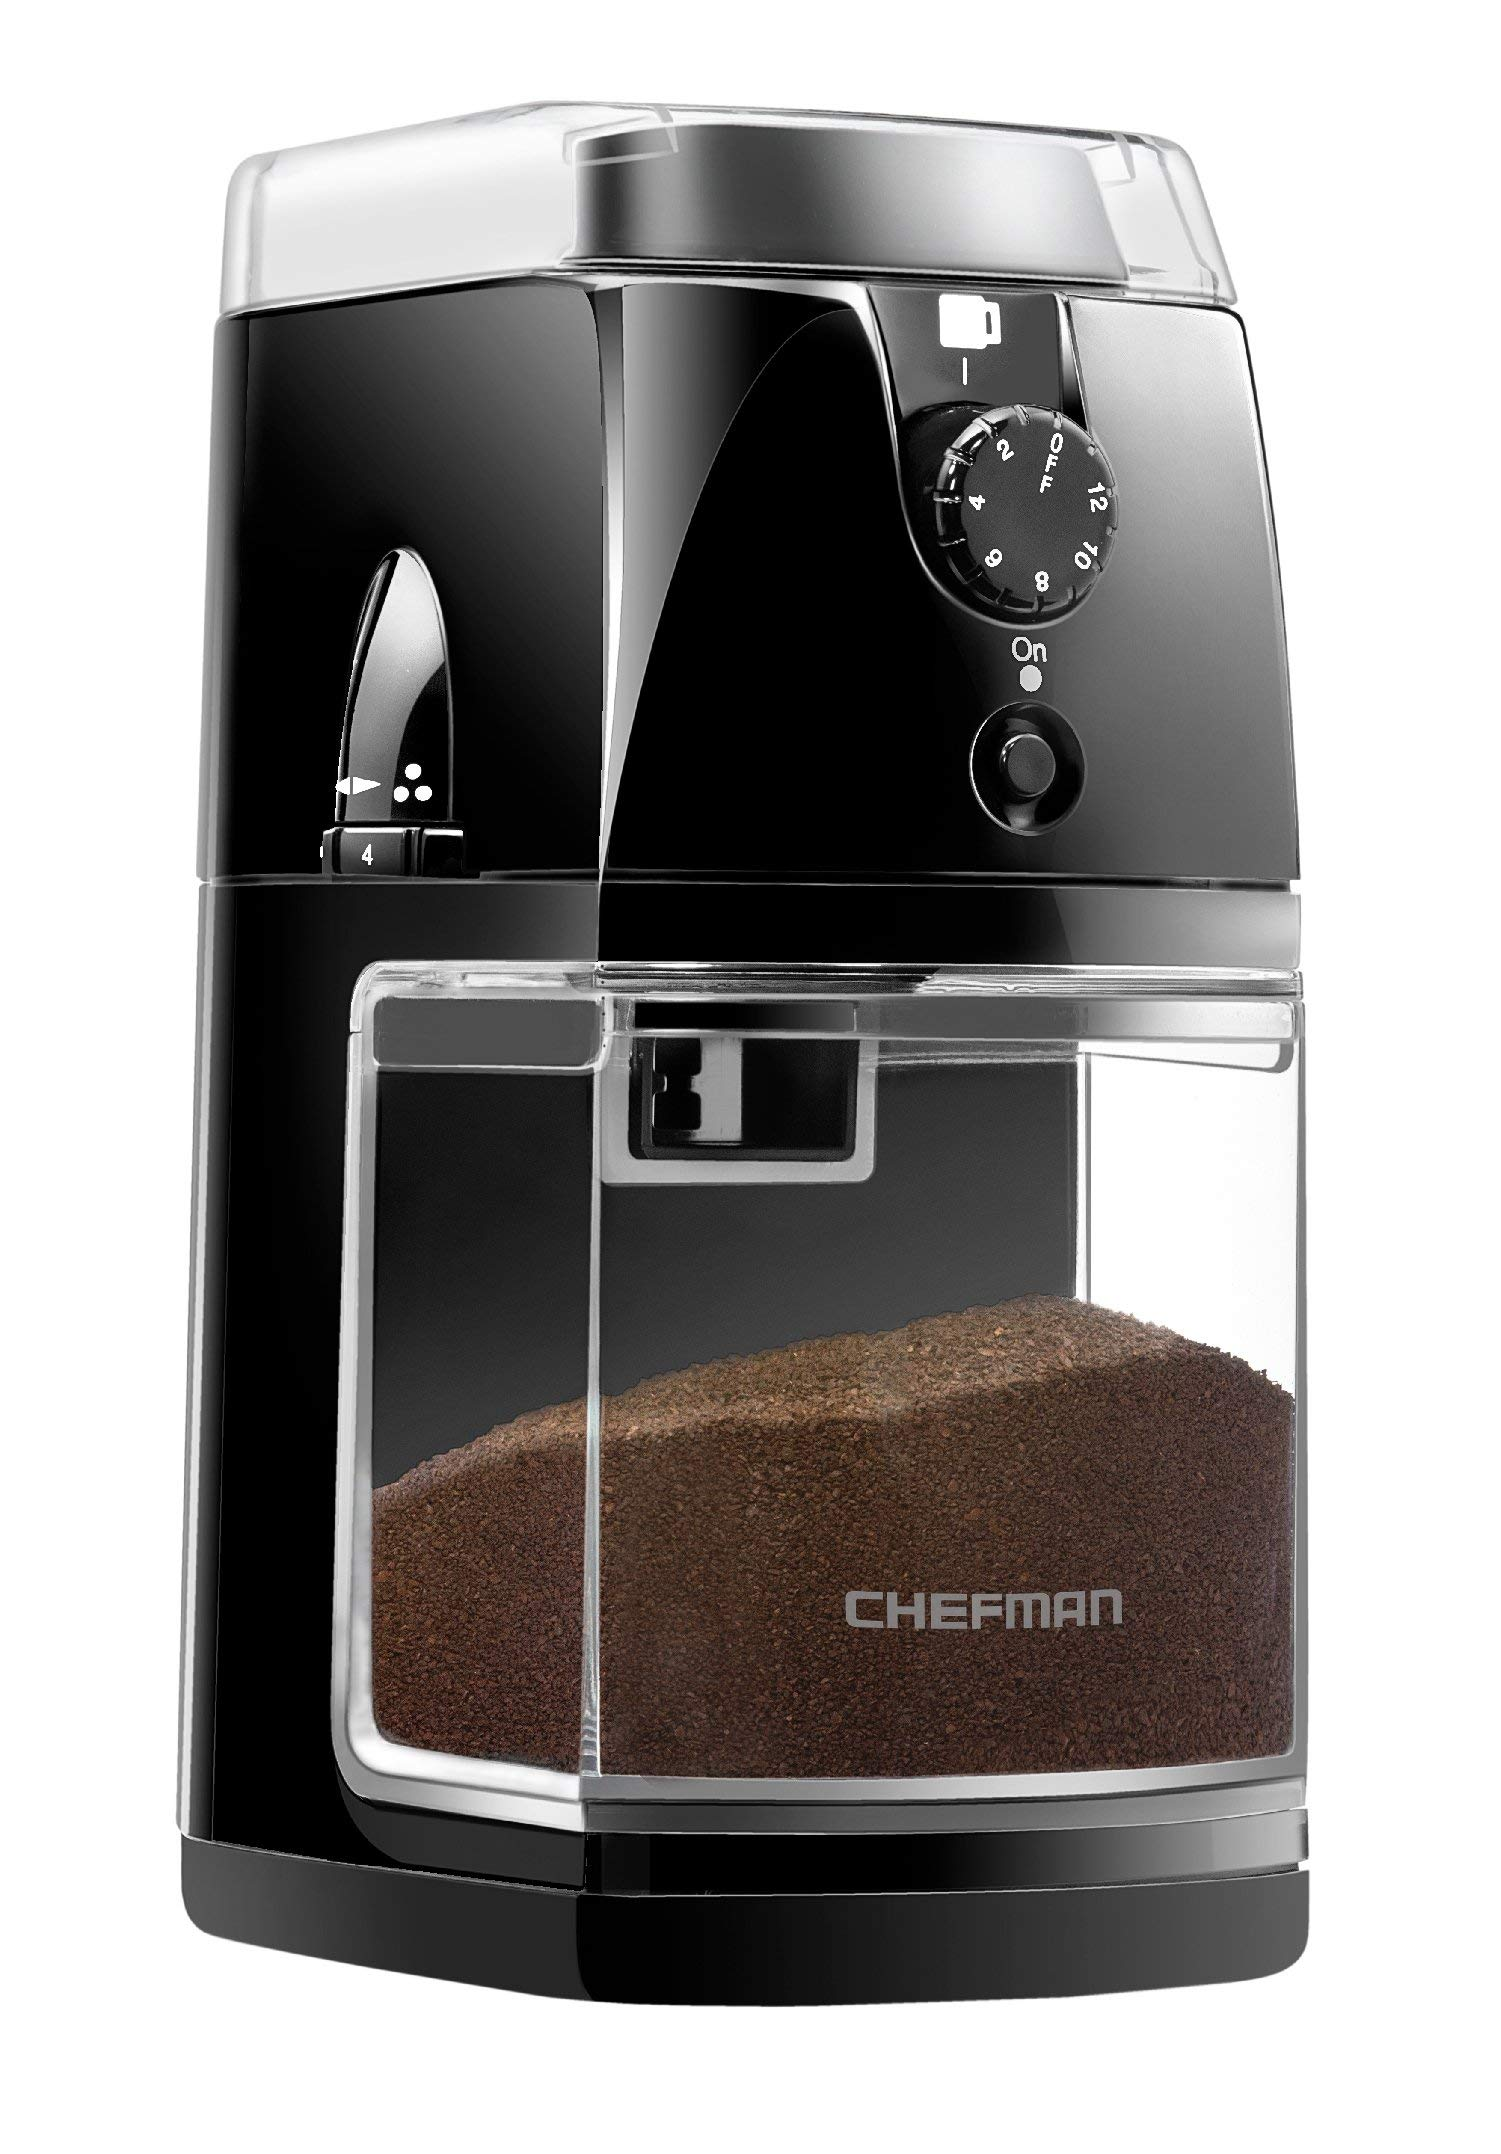 Chefman Coffee Grinder Electric Burr Mill Freshly 8oz Beans Large Hopper & 17 Grinding Options for 2-12 Cups, Easy One Touch Operation, Cleaning Brush Included, Black, (Renewed) by Chefman